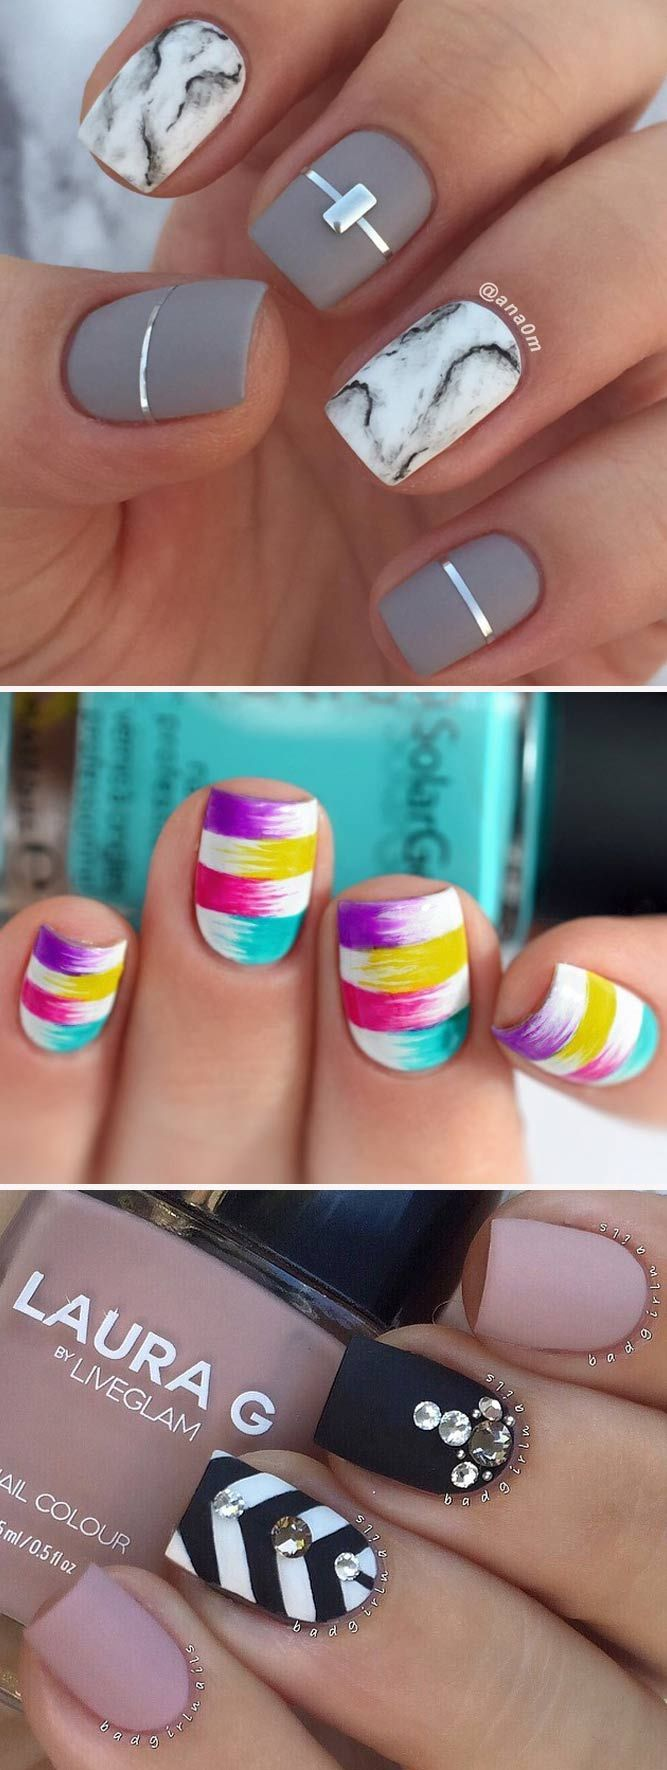 42 Pretty Nail Designs Youll Want To Copy Immediately Nails